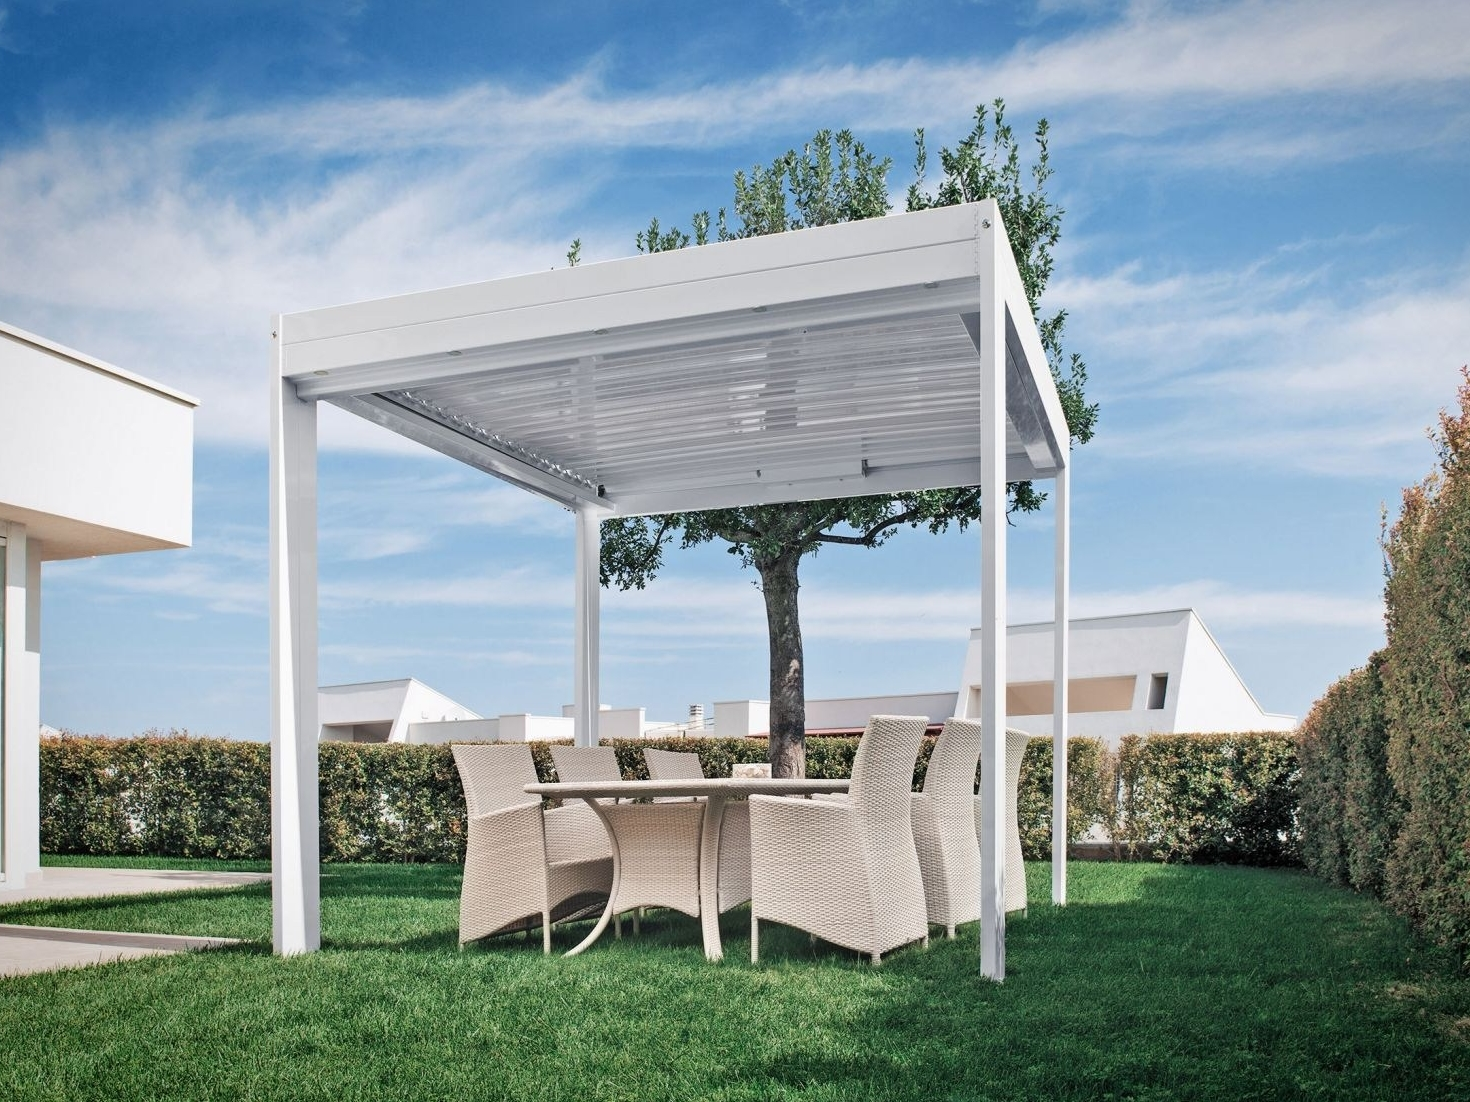 aluminium pergola with adjustable louvers flap cabrio by frigerio tende da sole design frigerio. Black Bedroom Furniture Sets. Home Design Ideas